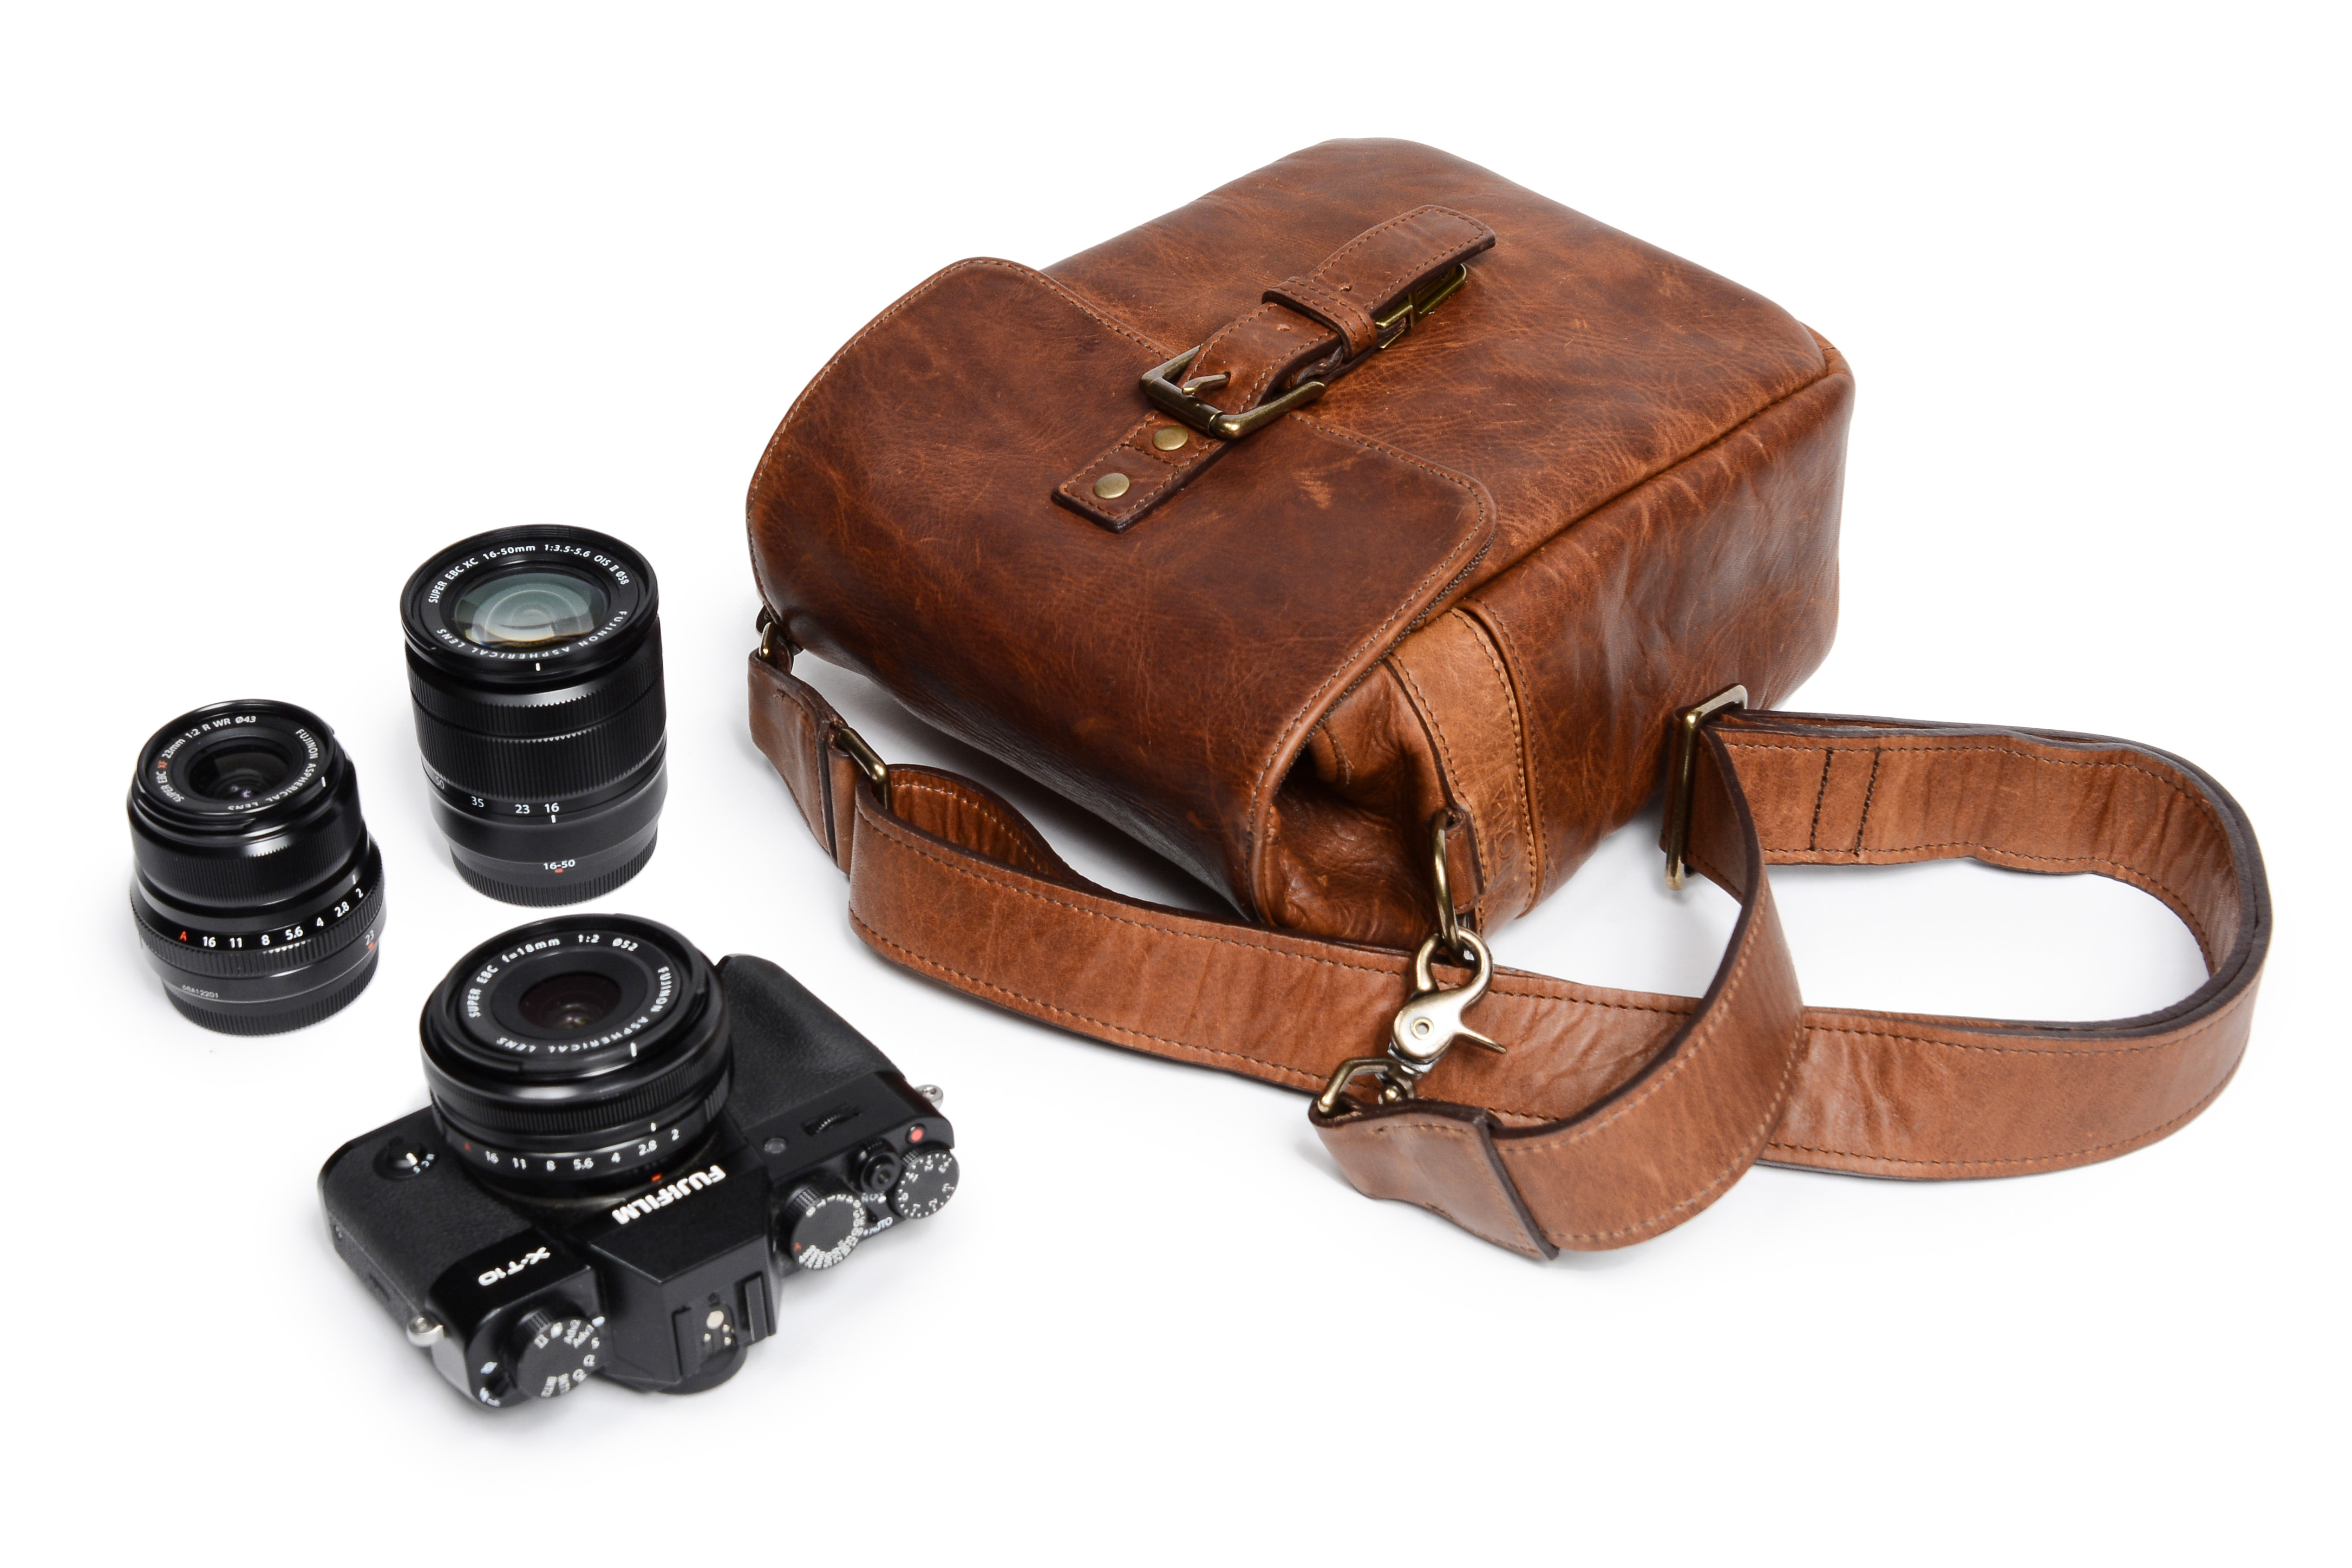 b16c17c3ce9 ONA releases new style bags and accessories for mirrorless users ...